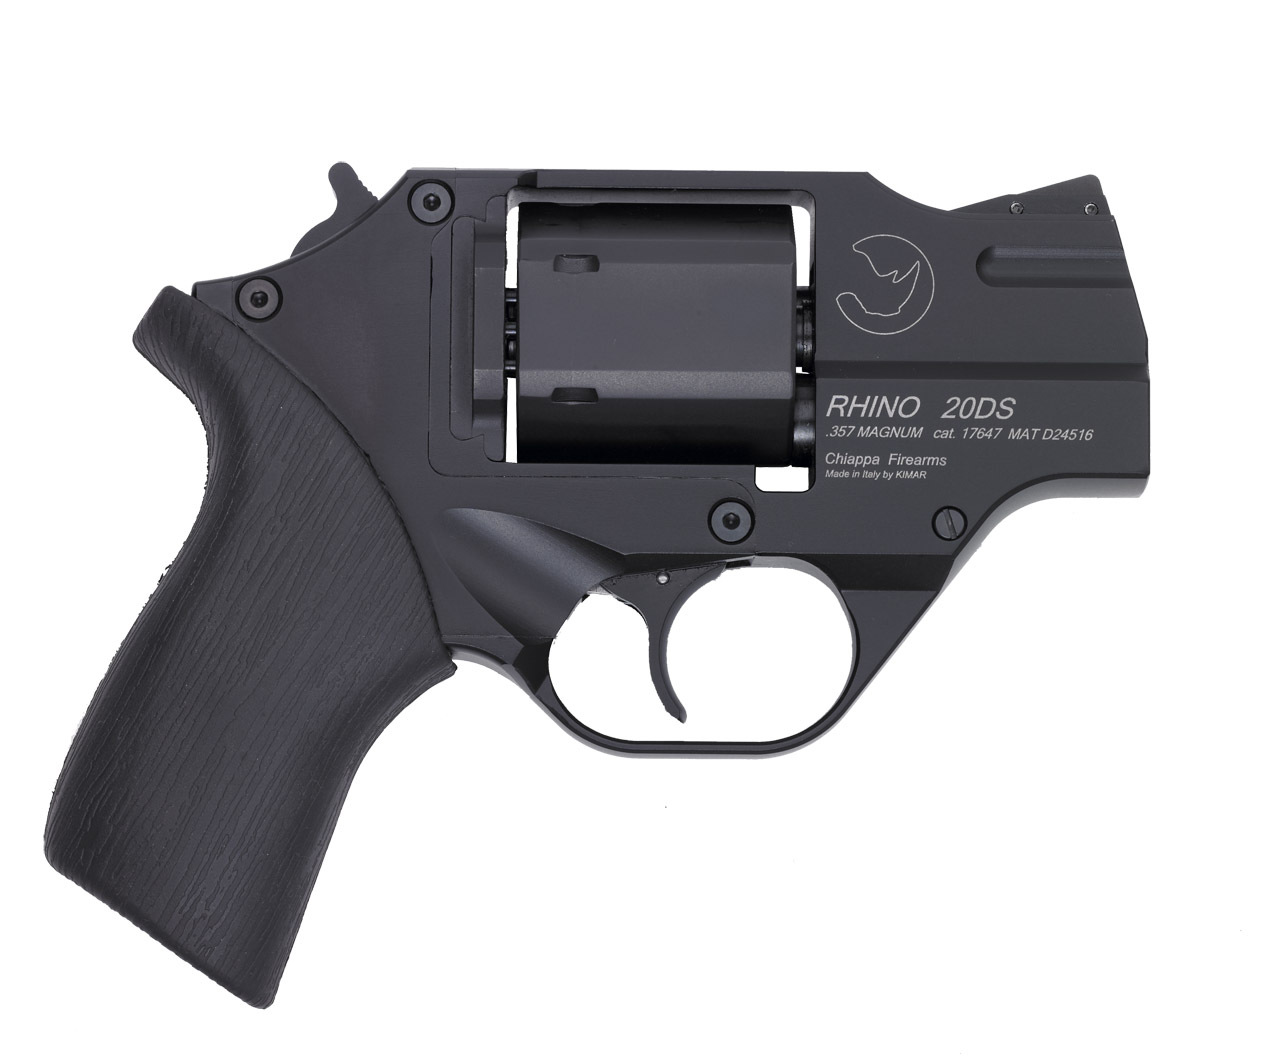 <!--:en-->Chiappa Rhino 6-Shot .357 Magnum Revolver for Concealed Carry (CCW) Applications<!--:-->